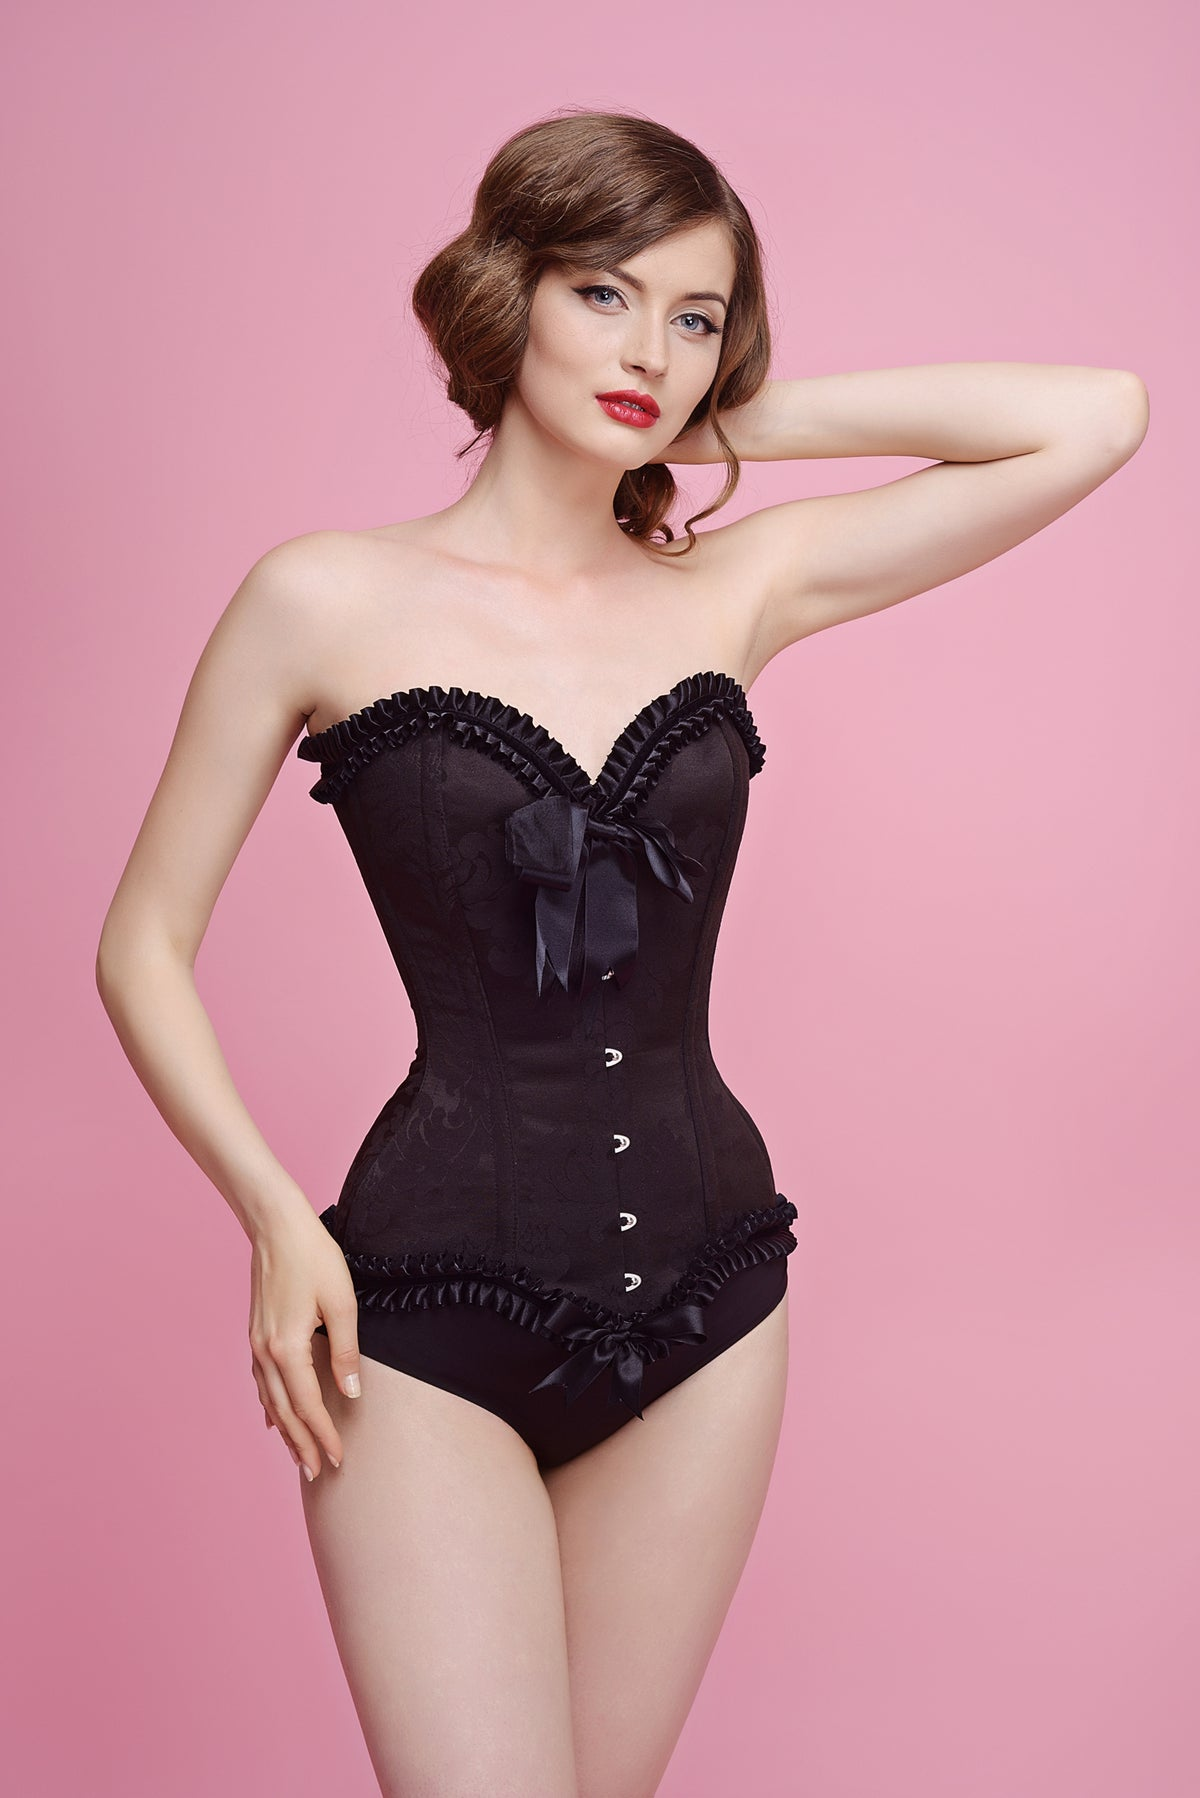 CORSET BROCADO NEGRO COSTURA